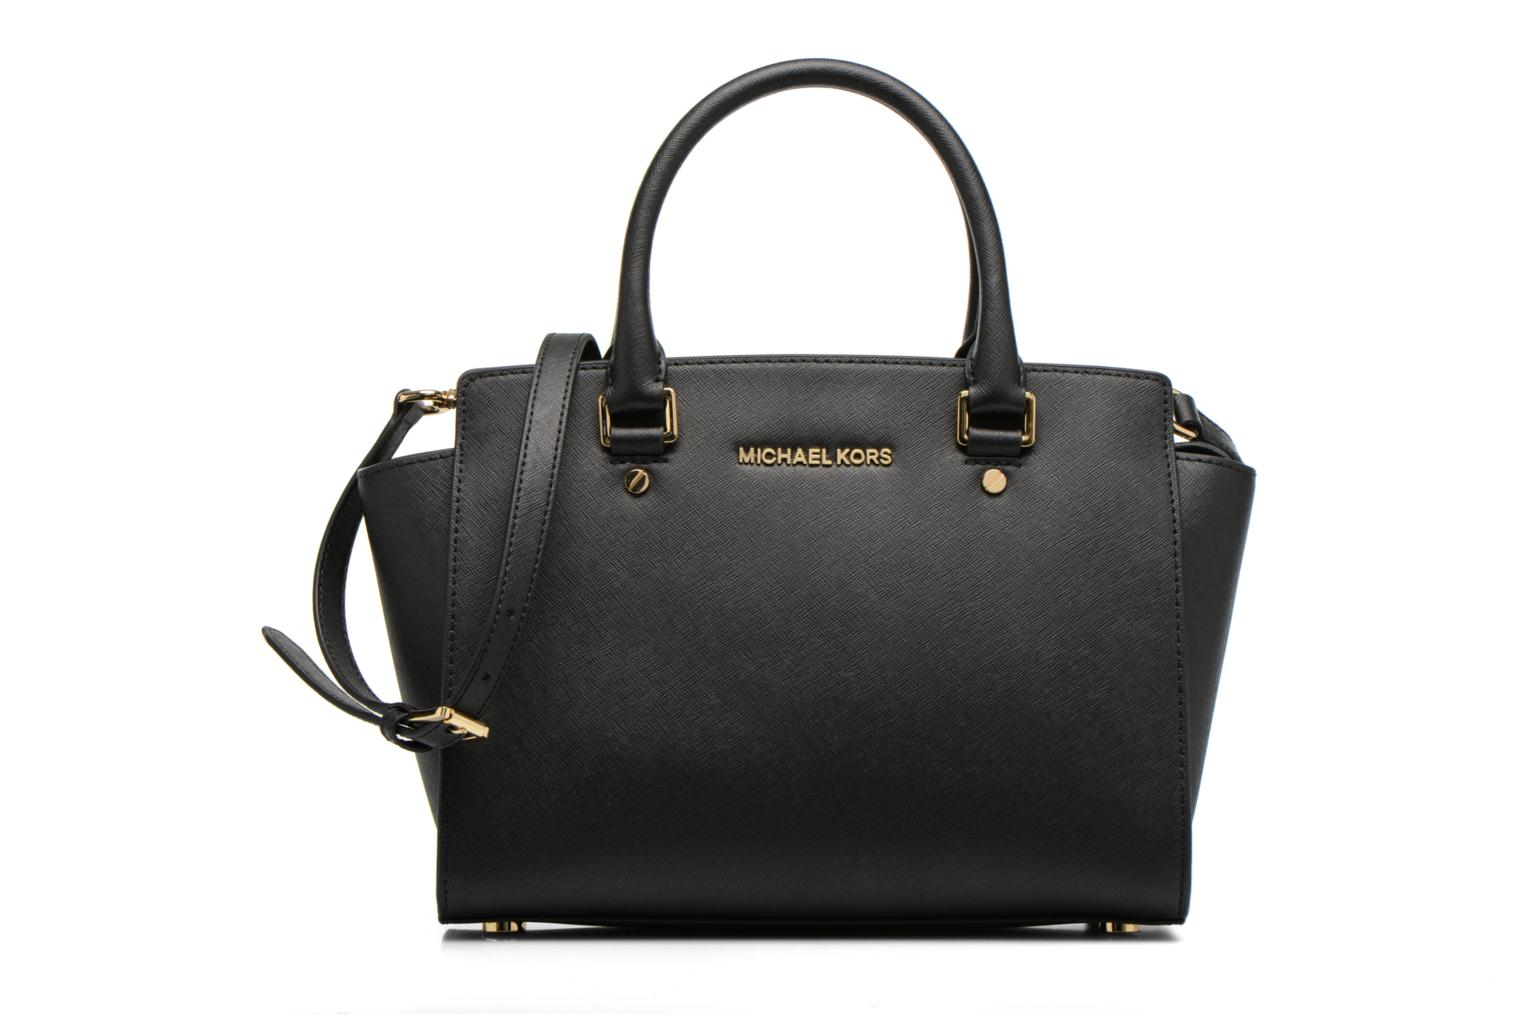 SELMA MD TZ SATCHEL SAFFIANO LEATHER BLACK